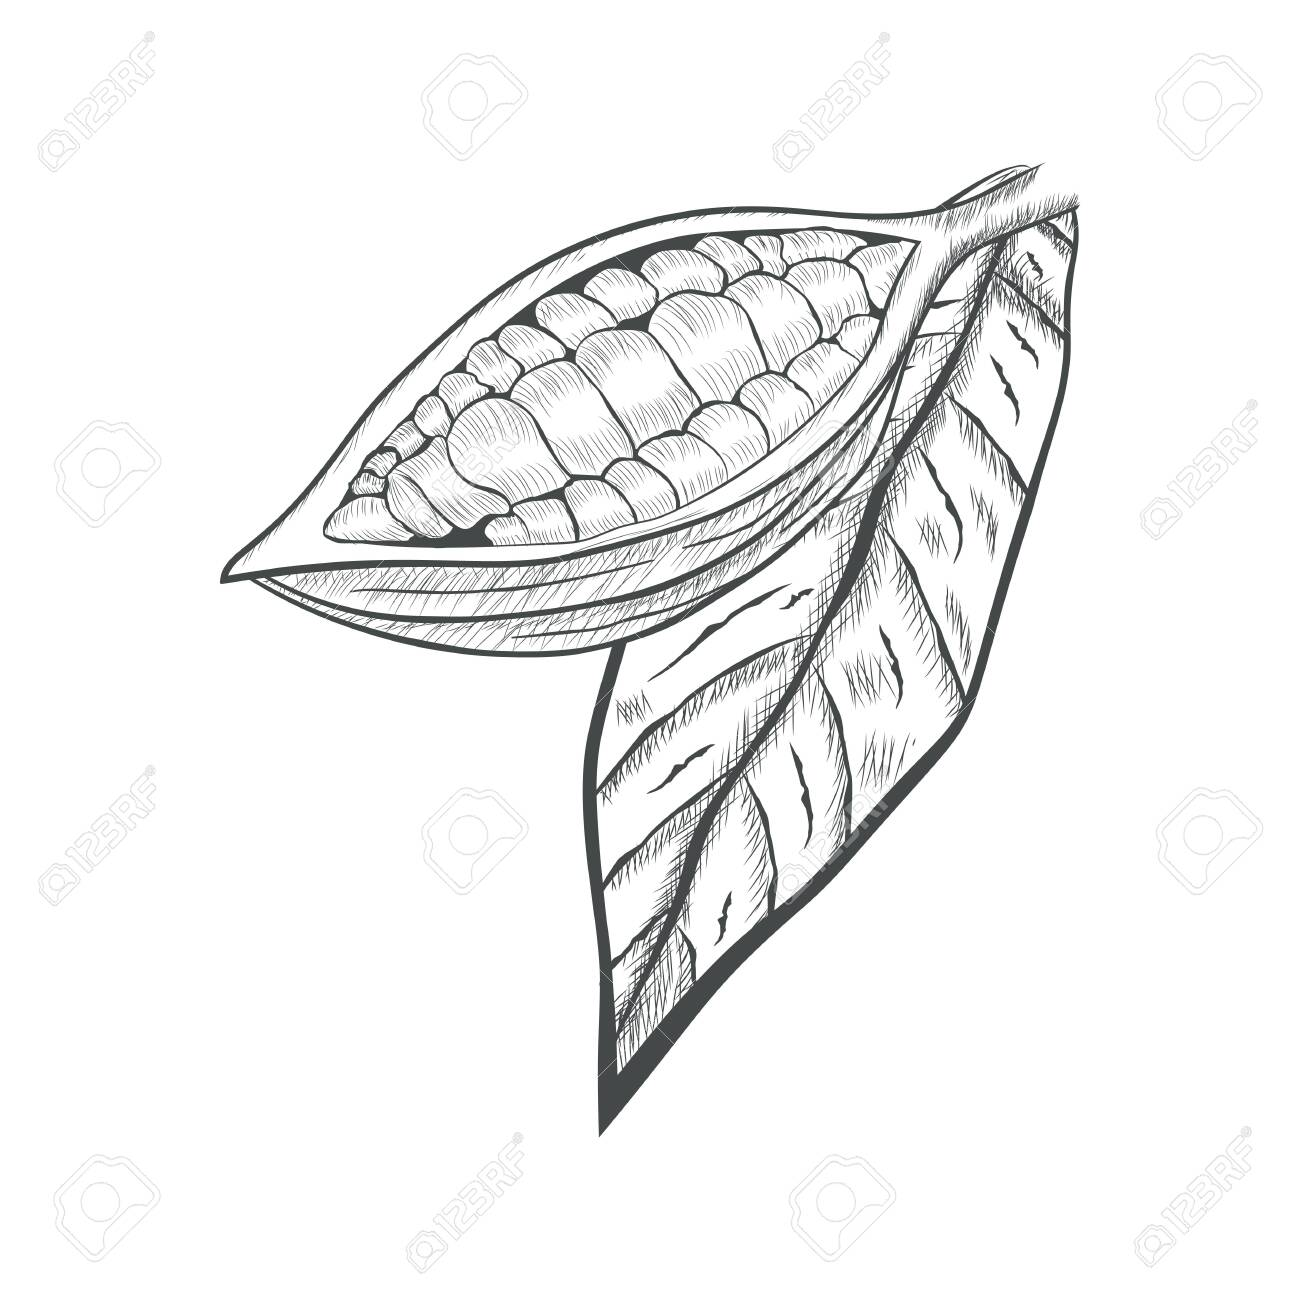 Fruit Chocolate Tree In A Cut With Cocoa Beans Theobroma Cacao Royalty Free Cliparts Vectors And Stock Illustration Image 122286546